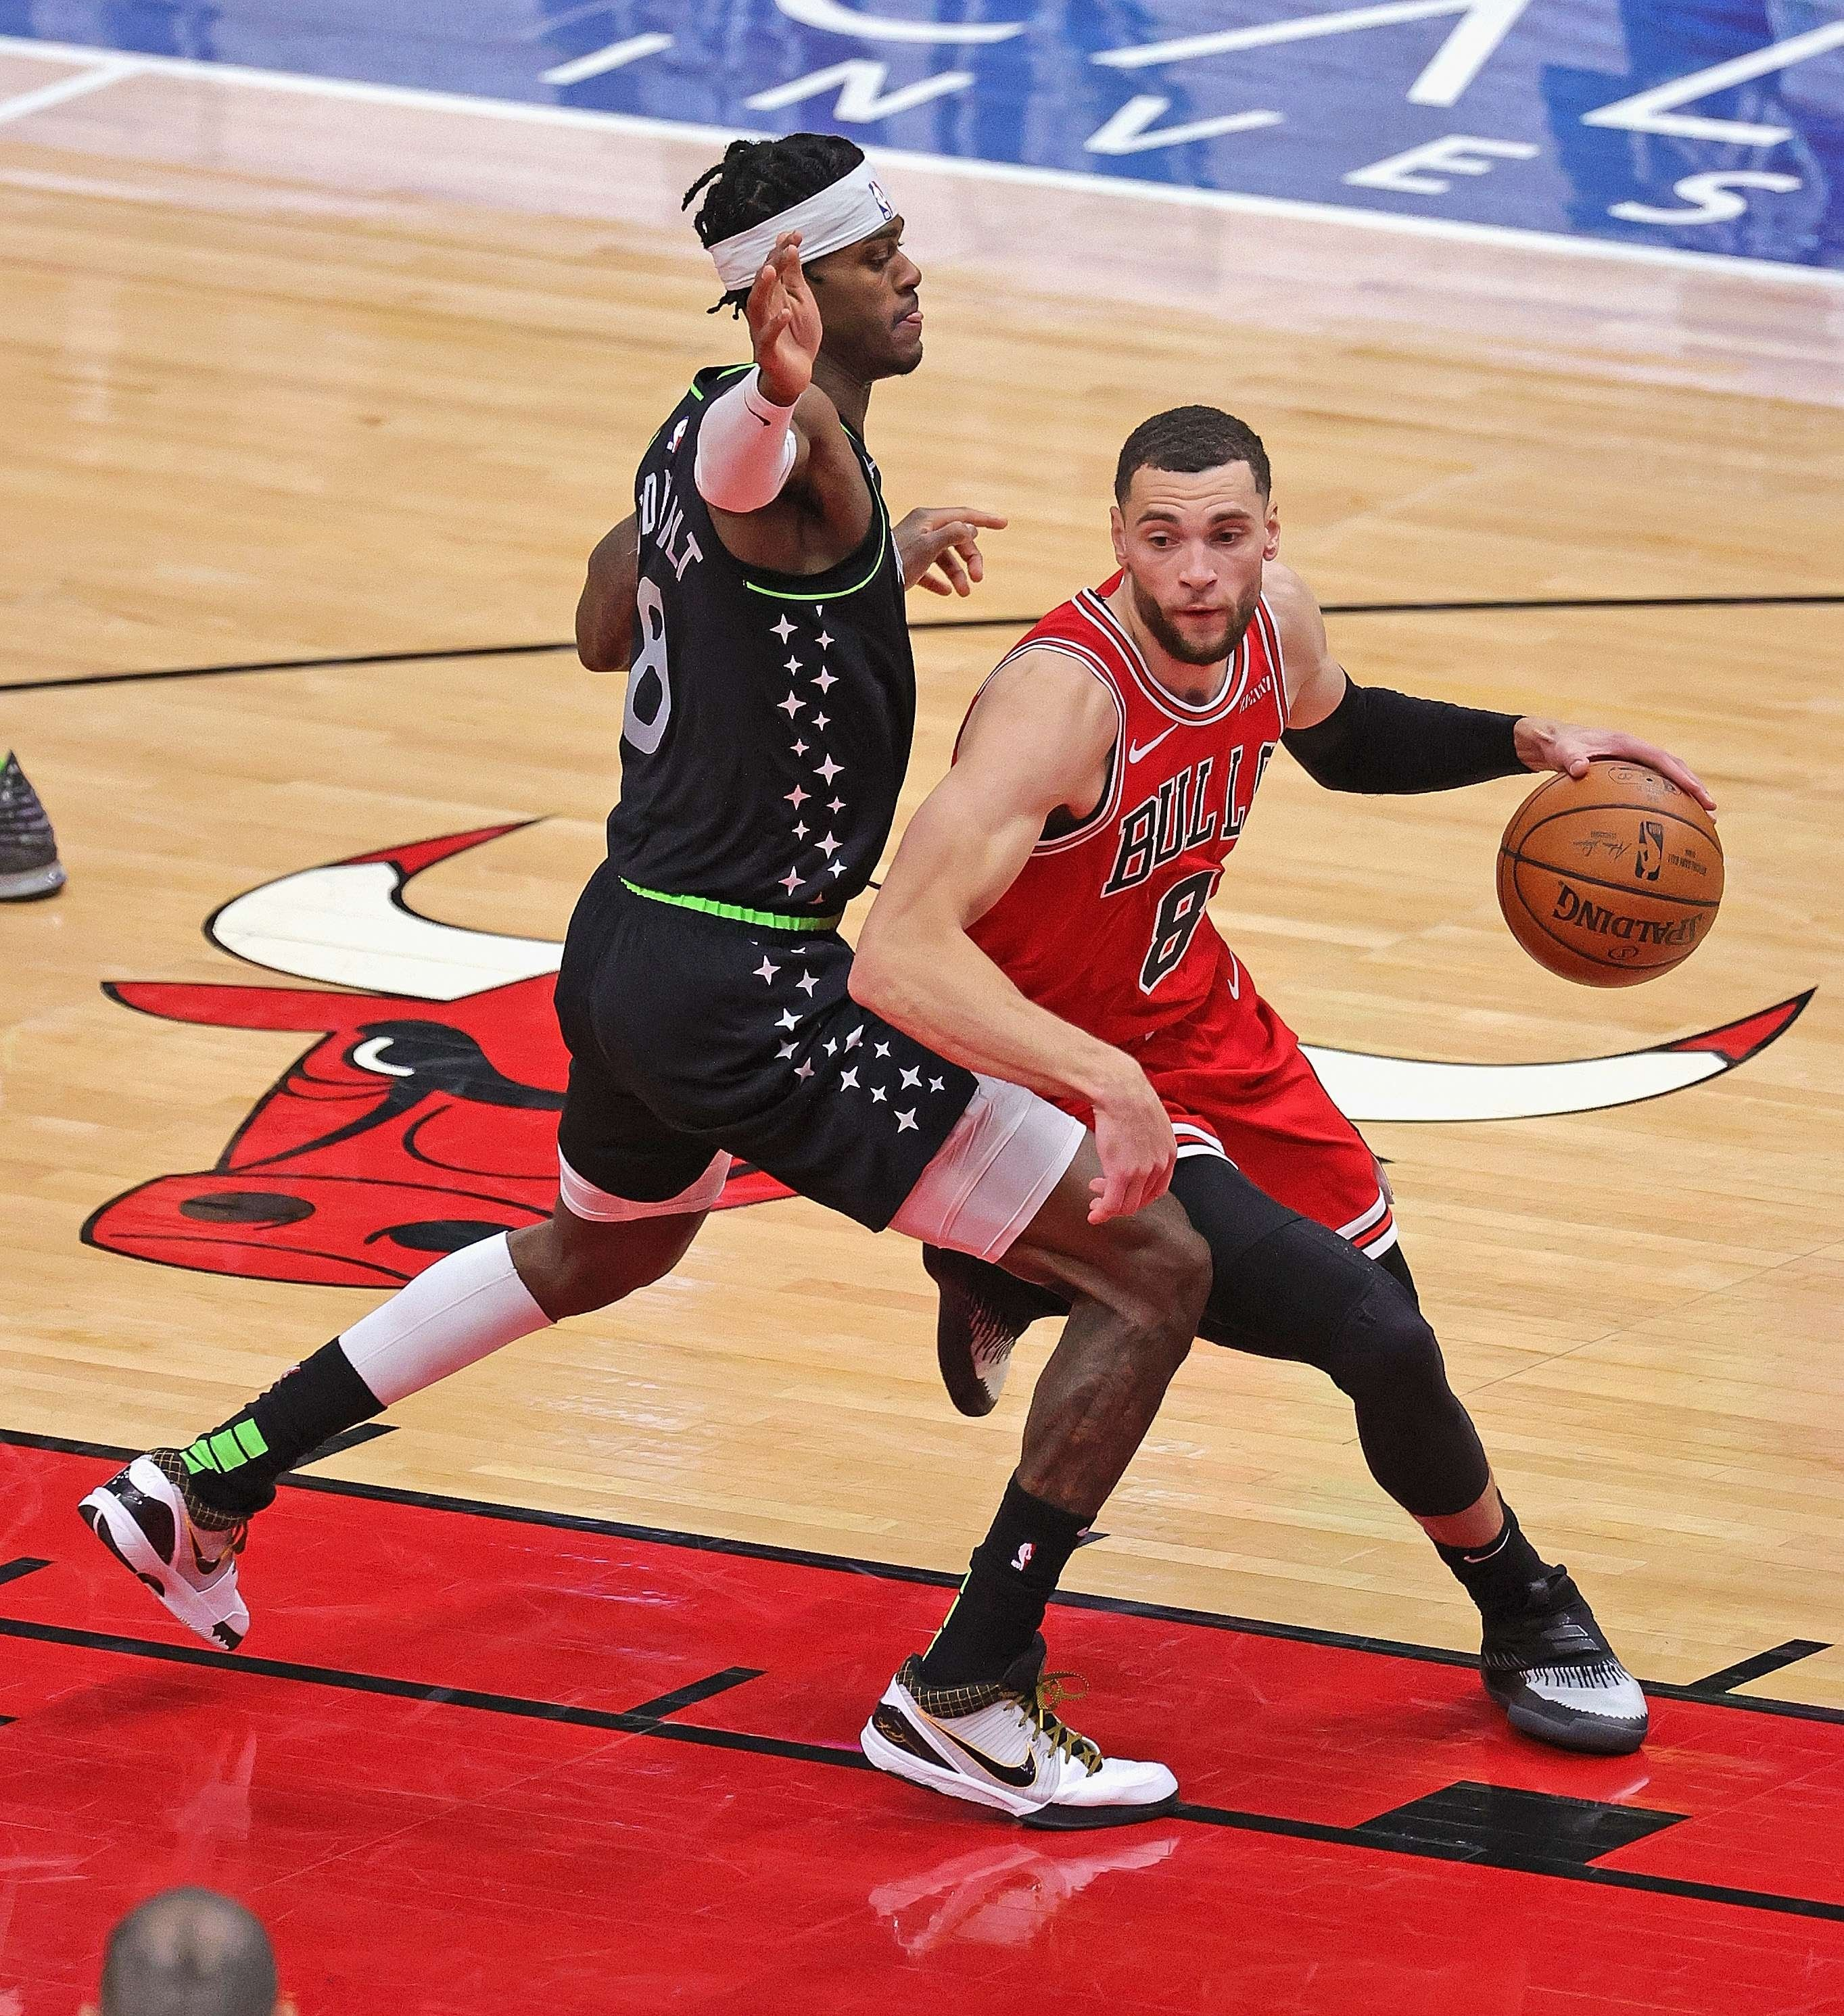 Chicago Bulls' small forward Zach LaVine (R) moves against Minnesota Timberwolves' Jarred Vanderbilt (L) during an NBA match at the United Center, Chicago, Illinois,February 24, 2021. (AFP Photo)